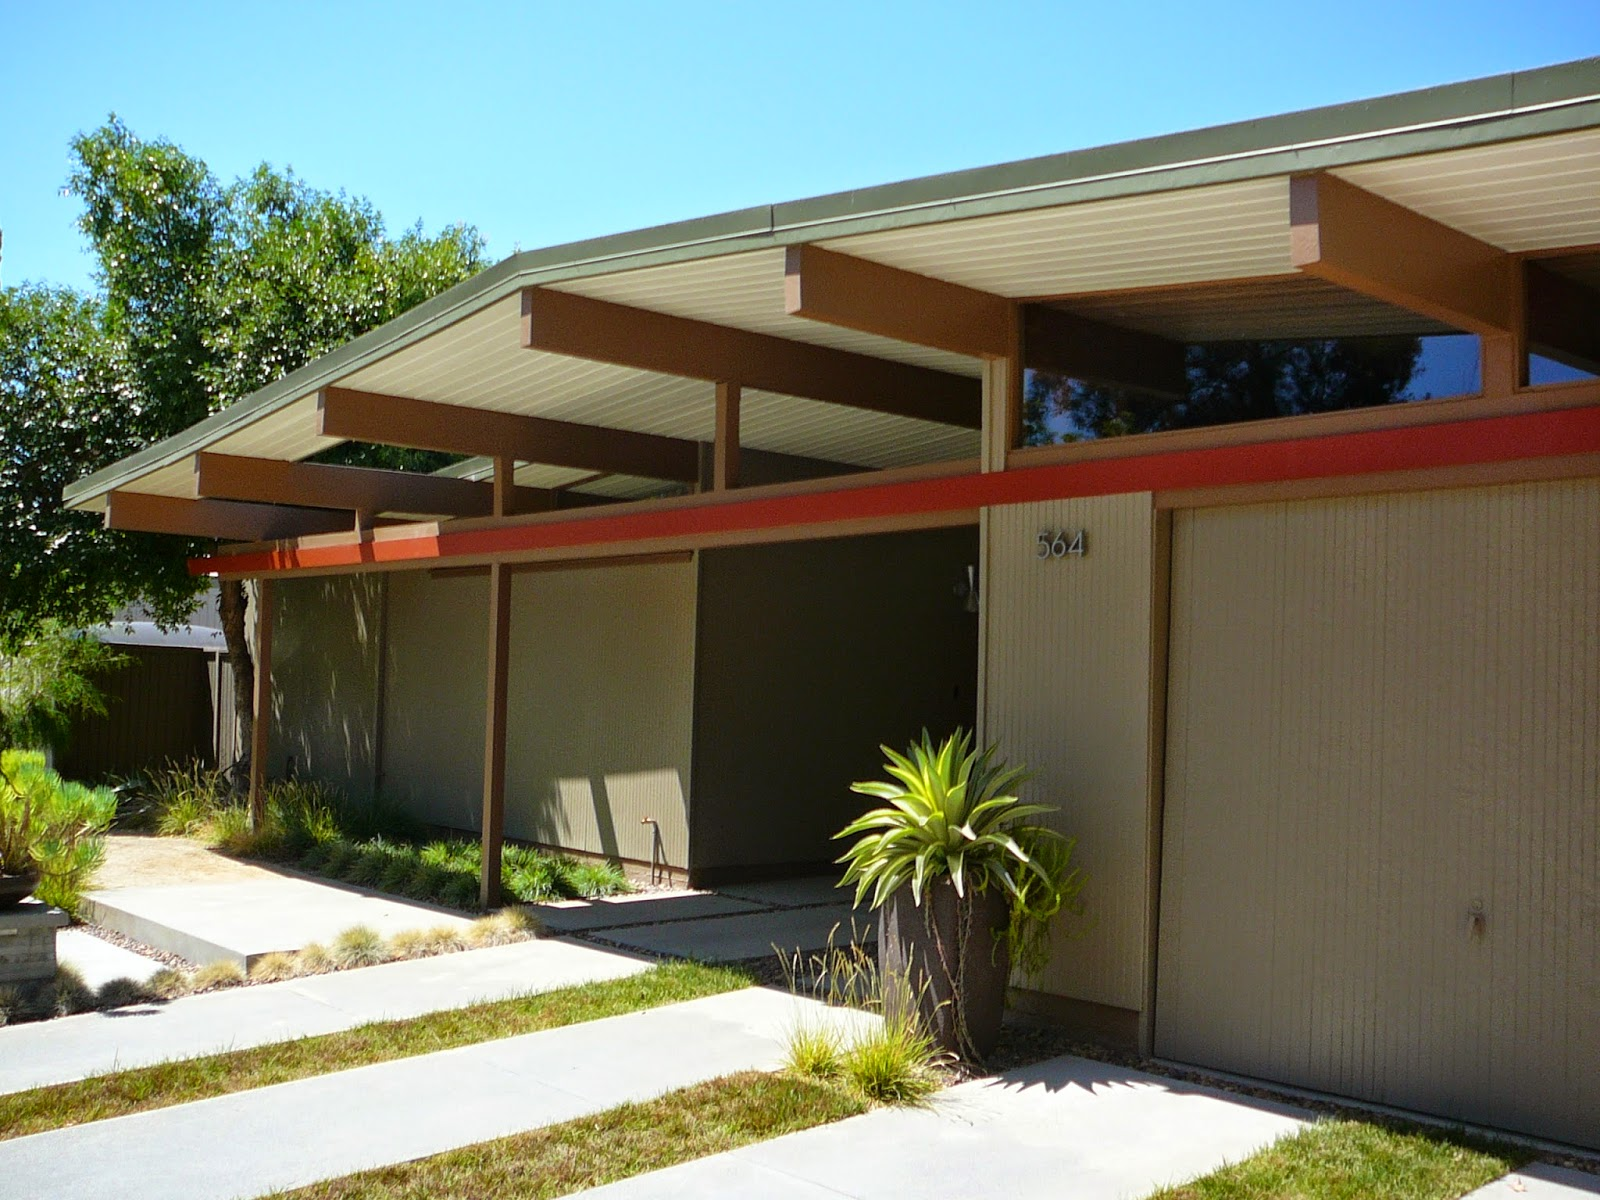 Orange county structure unique eichler houses are in high for Eichler house